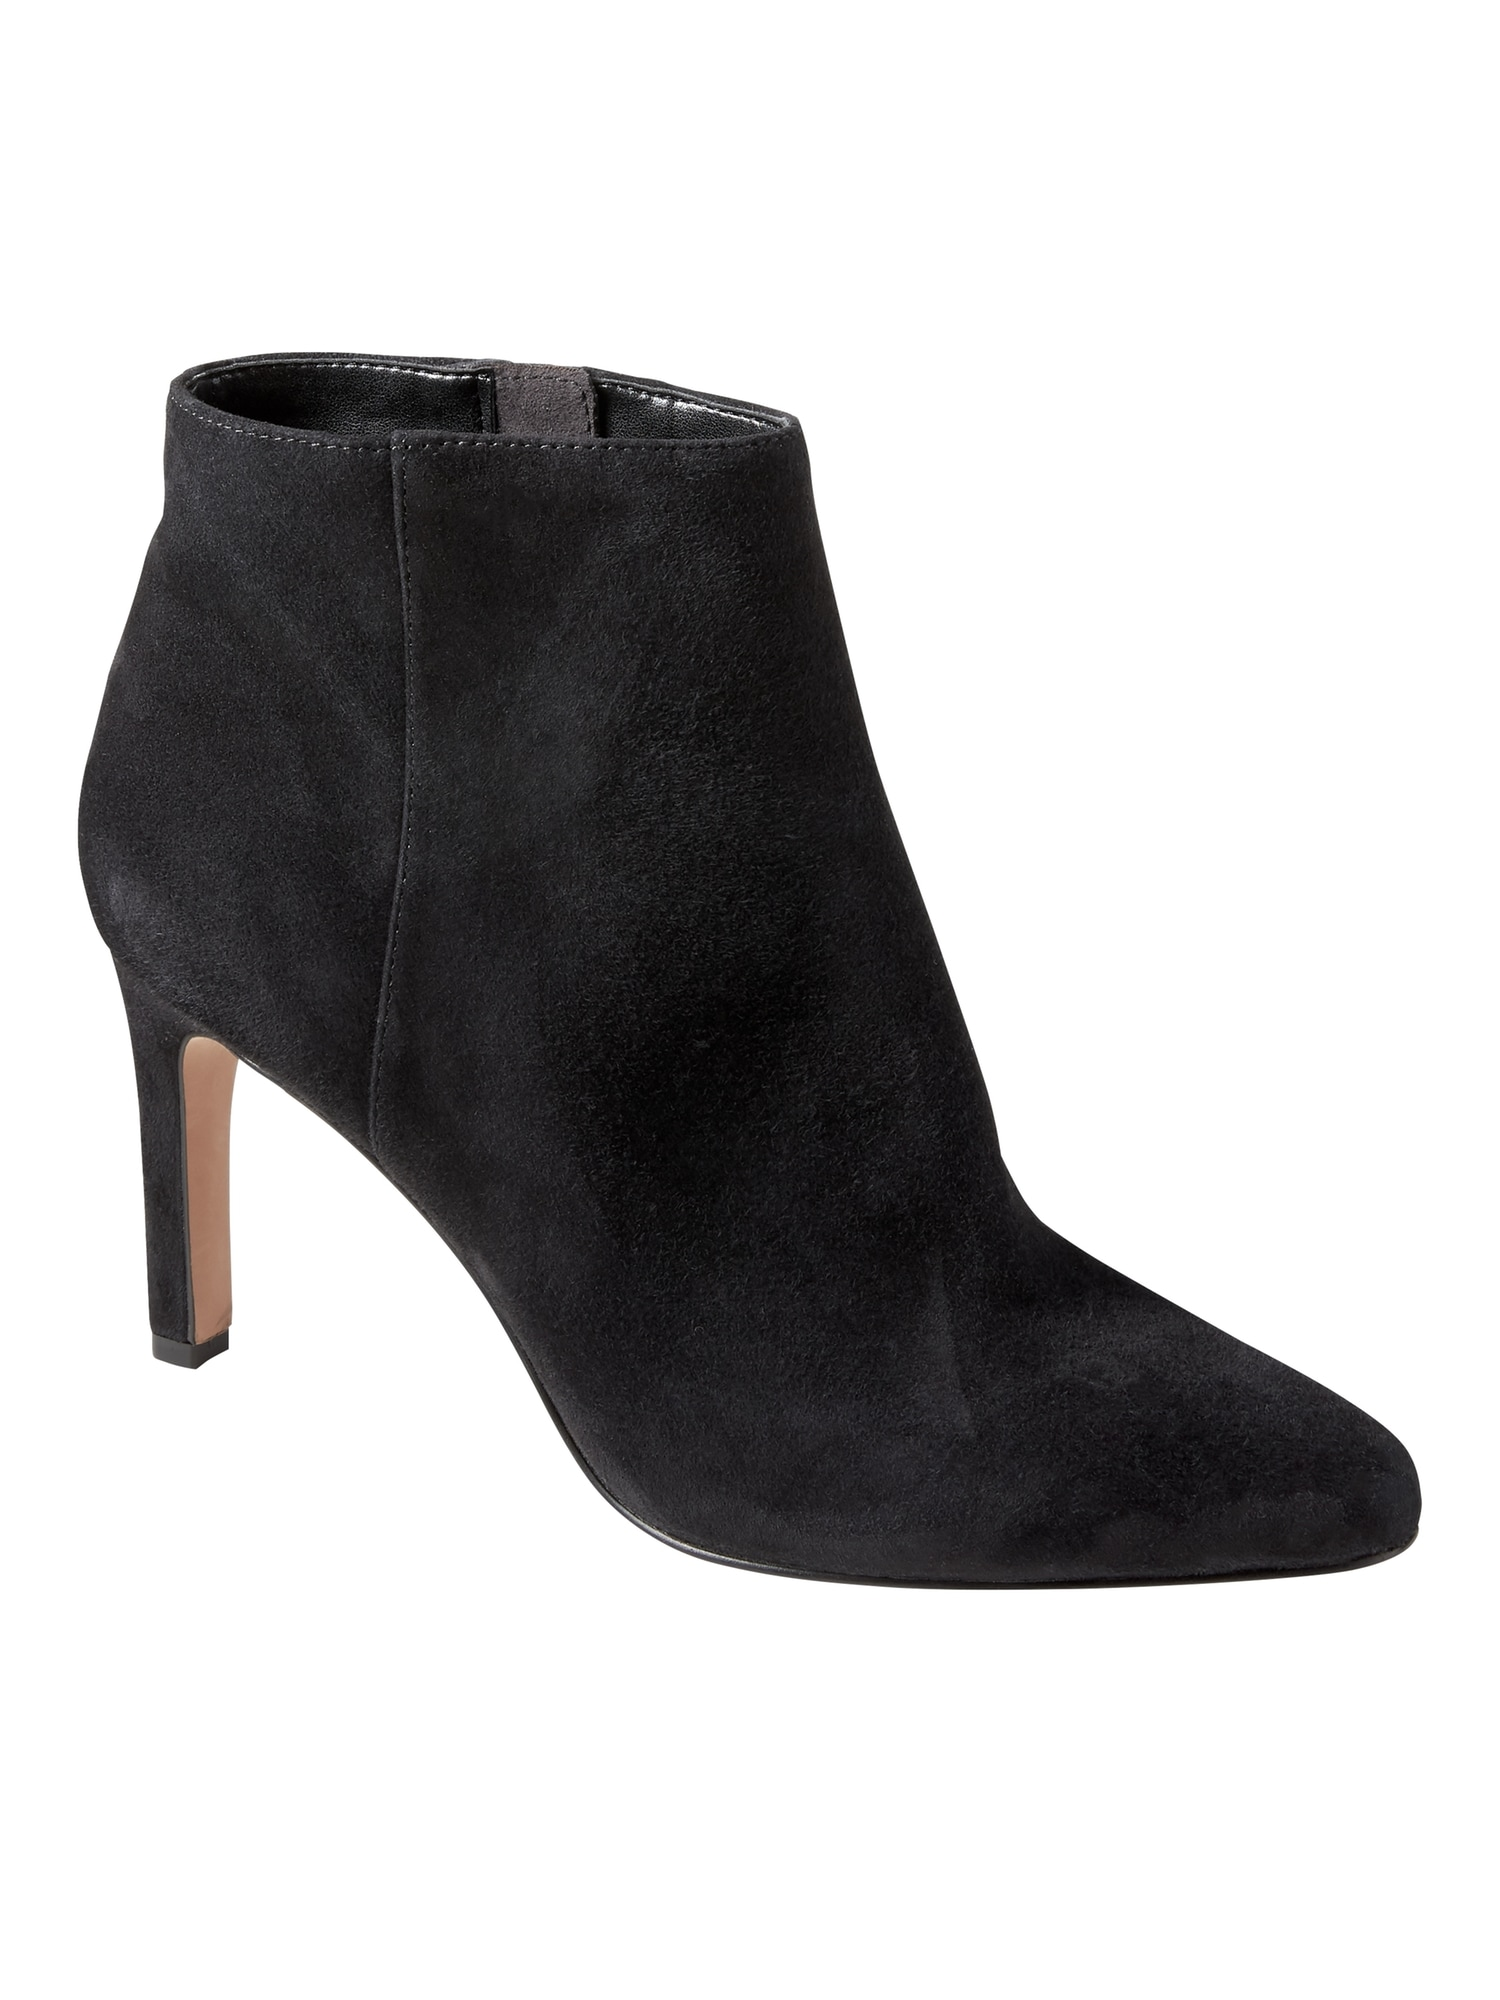 64f9a780d74a Skinny-Heel Ankle Boot